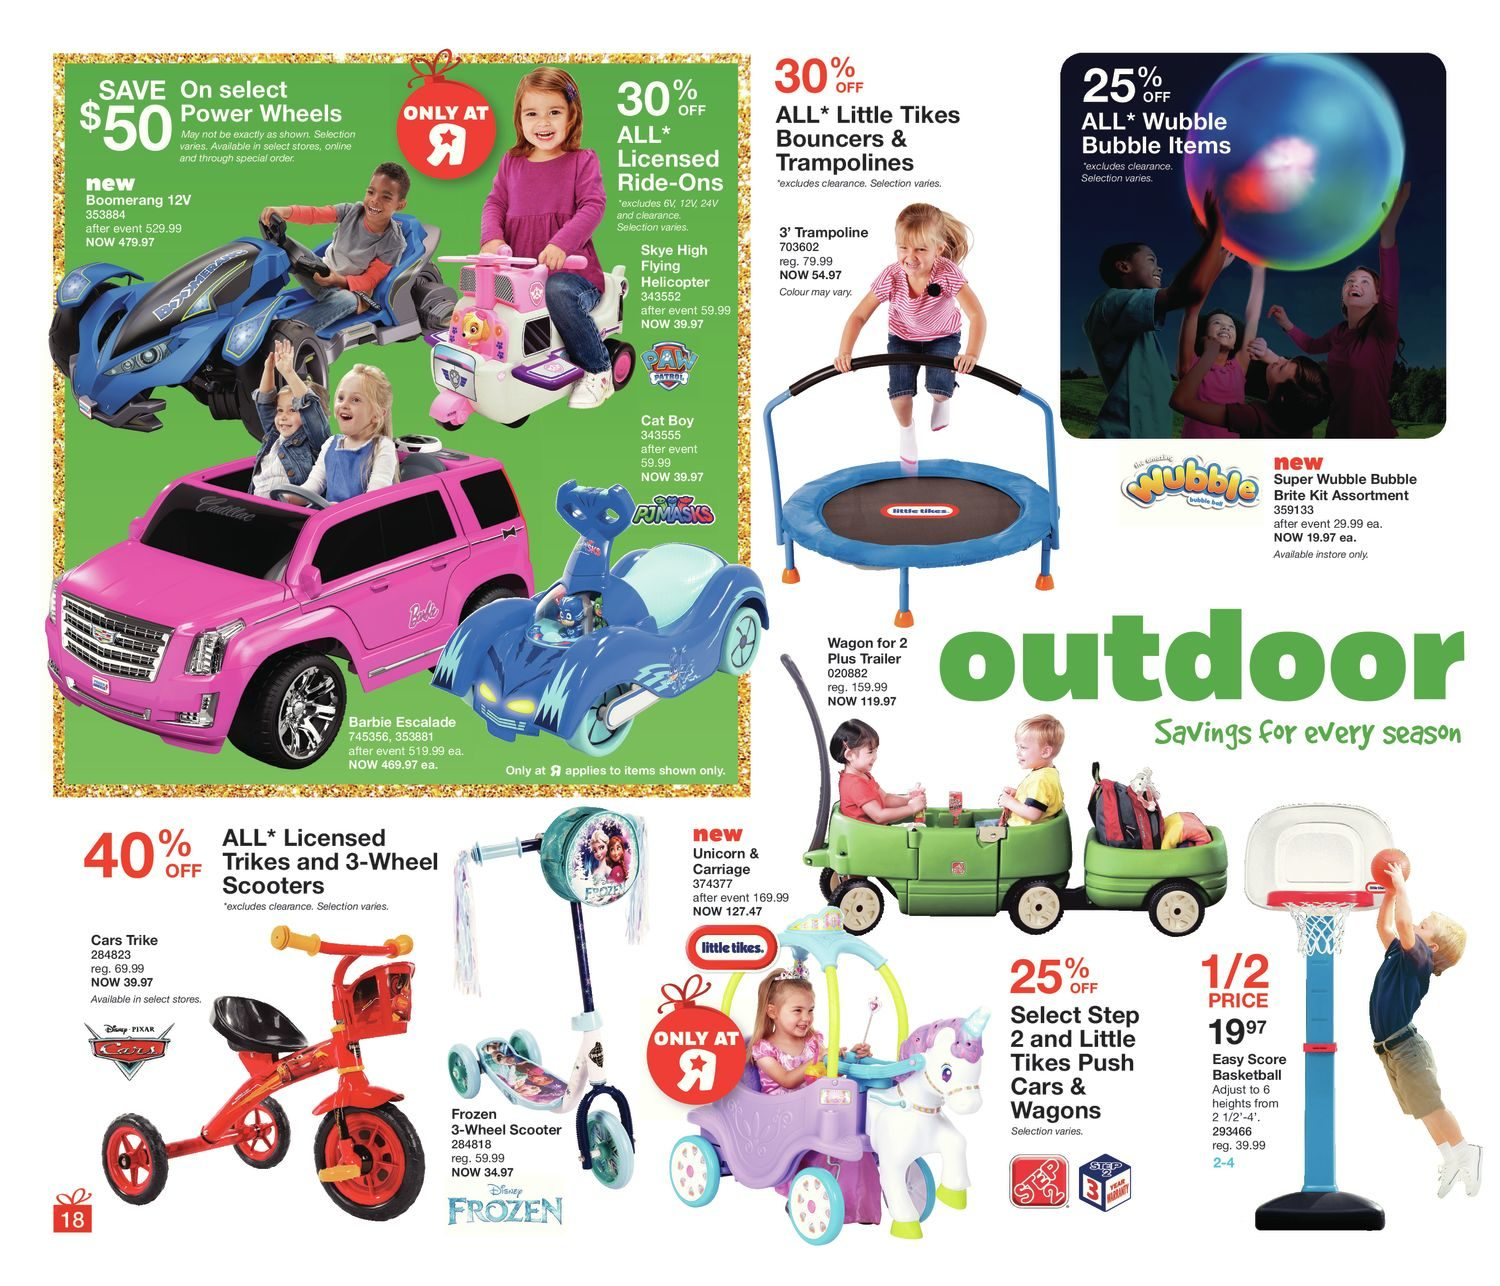 Toys R Us Weekly Flyer Holiplay Playbook Dec 8 14 Cozy Trike Wiring Diagram For